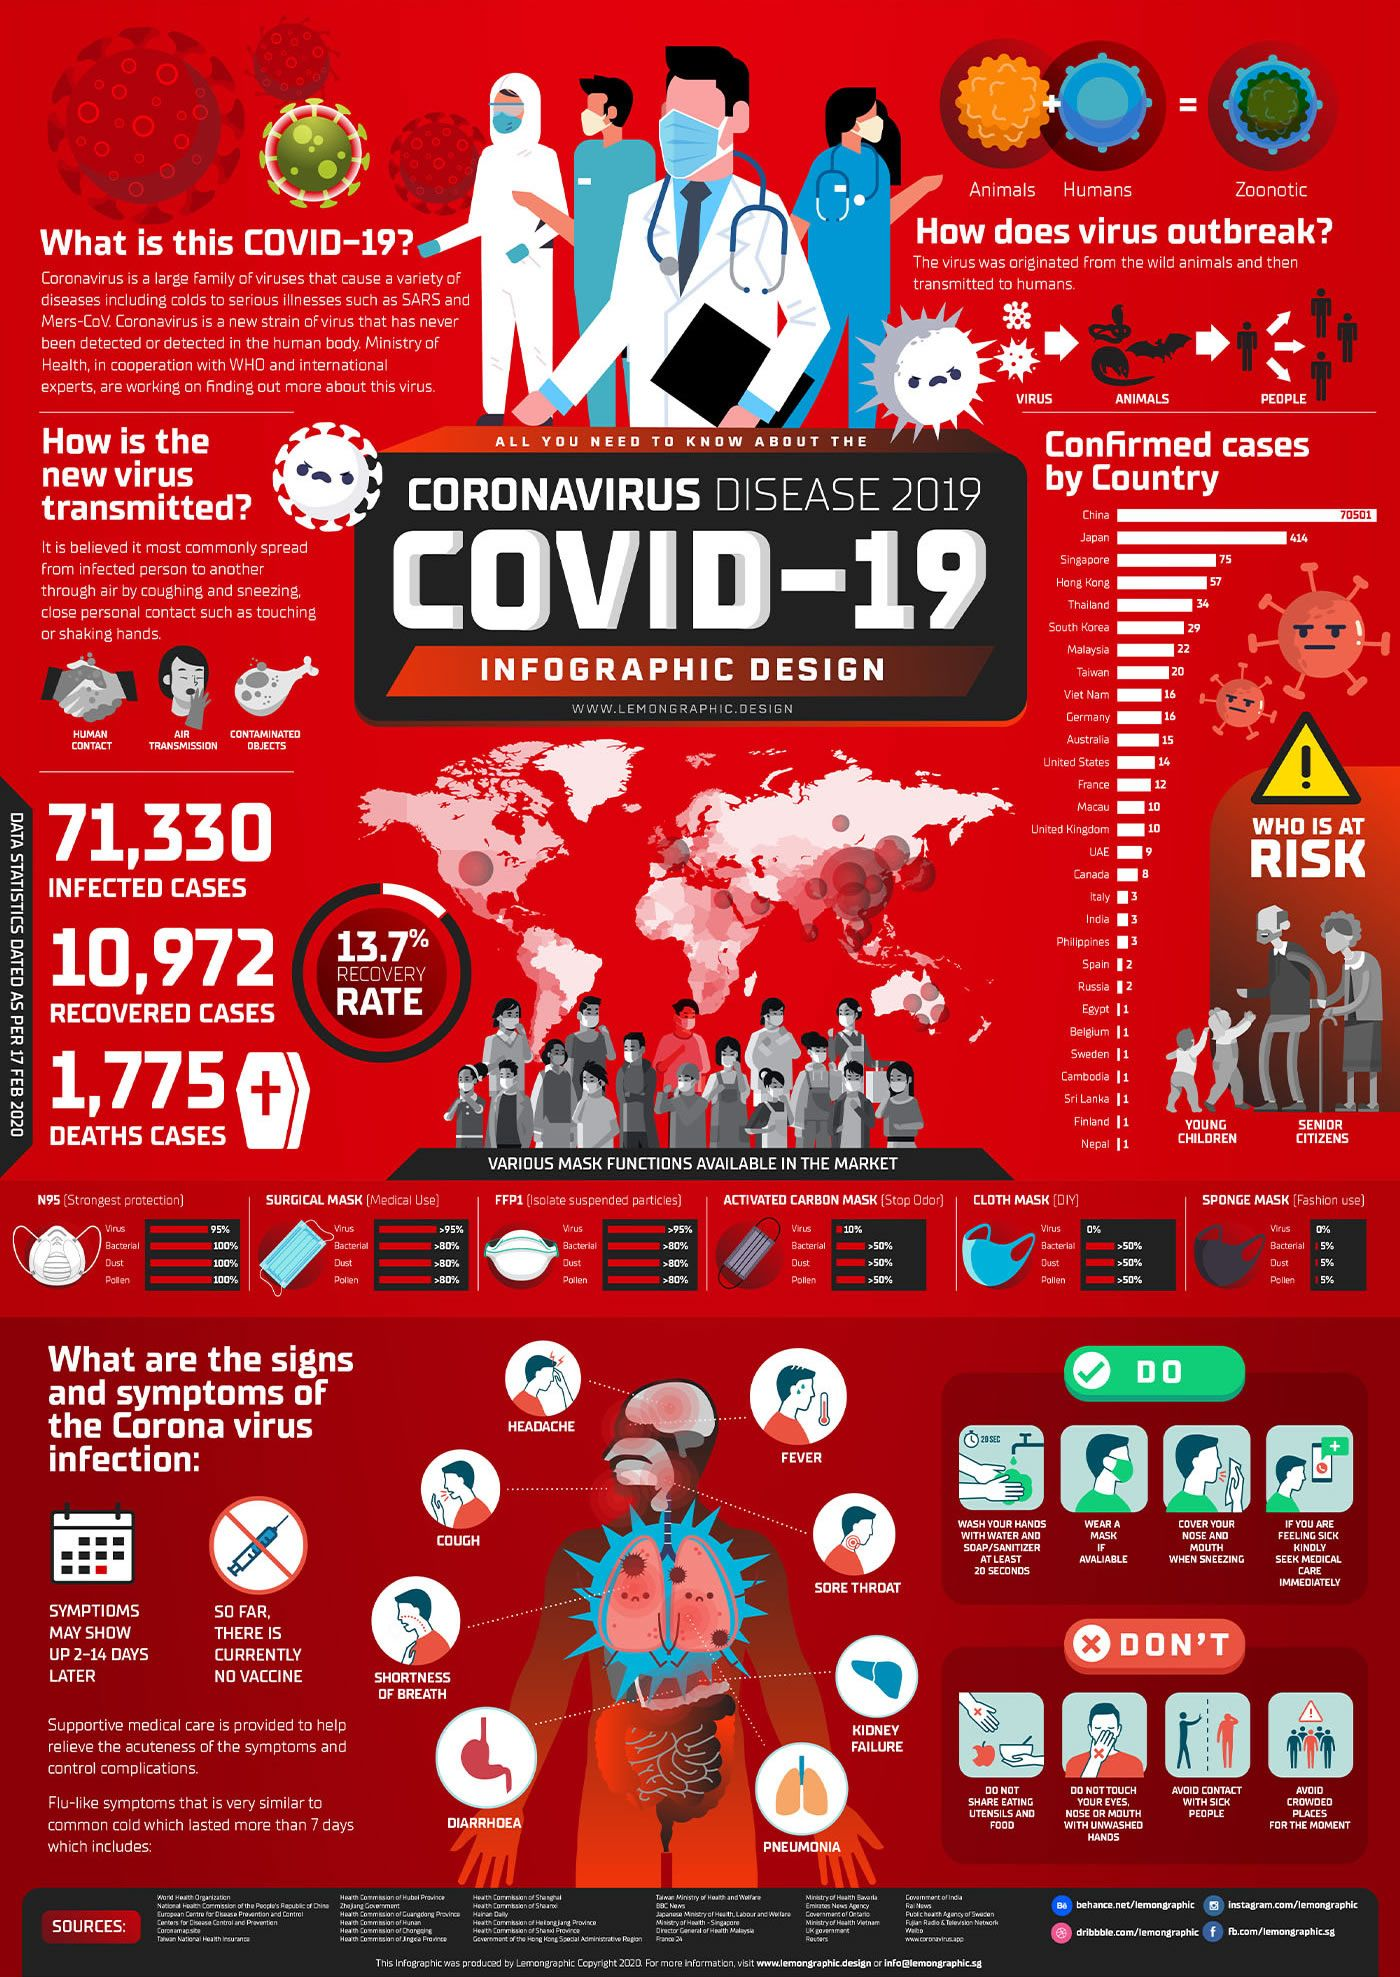 All you need to know about the new coronavirus disease 2019 - COVID-19 in this one piece infographic design. Information and data collected are based on researchfrom multiple online sources. Easy to read and understand on what this COVID-19 virus is about and how it can be transmitted or prevention. #SingaporeTogether ##BraveheartSG #ncov2019 #epidemic #sars #wuhan #2019ncov #quarantine #worldhealthorganization #outbreak #coronavirus #disease #covid-19 #infographic #informationdesign #poster